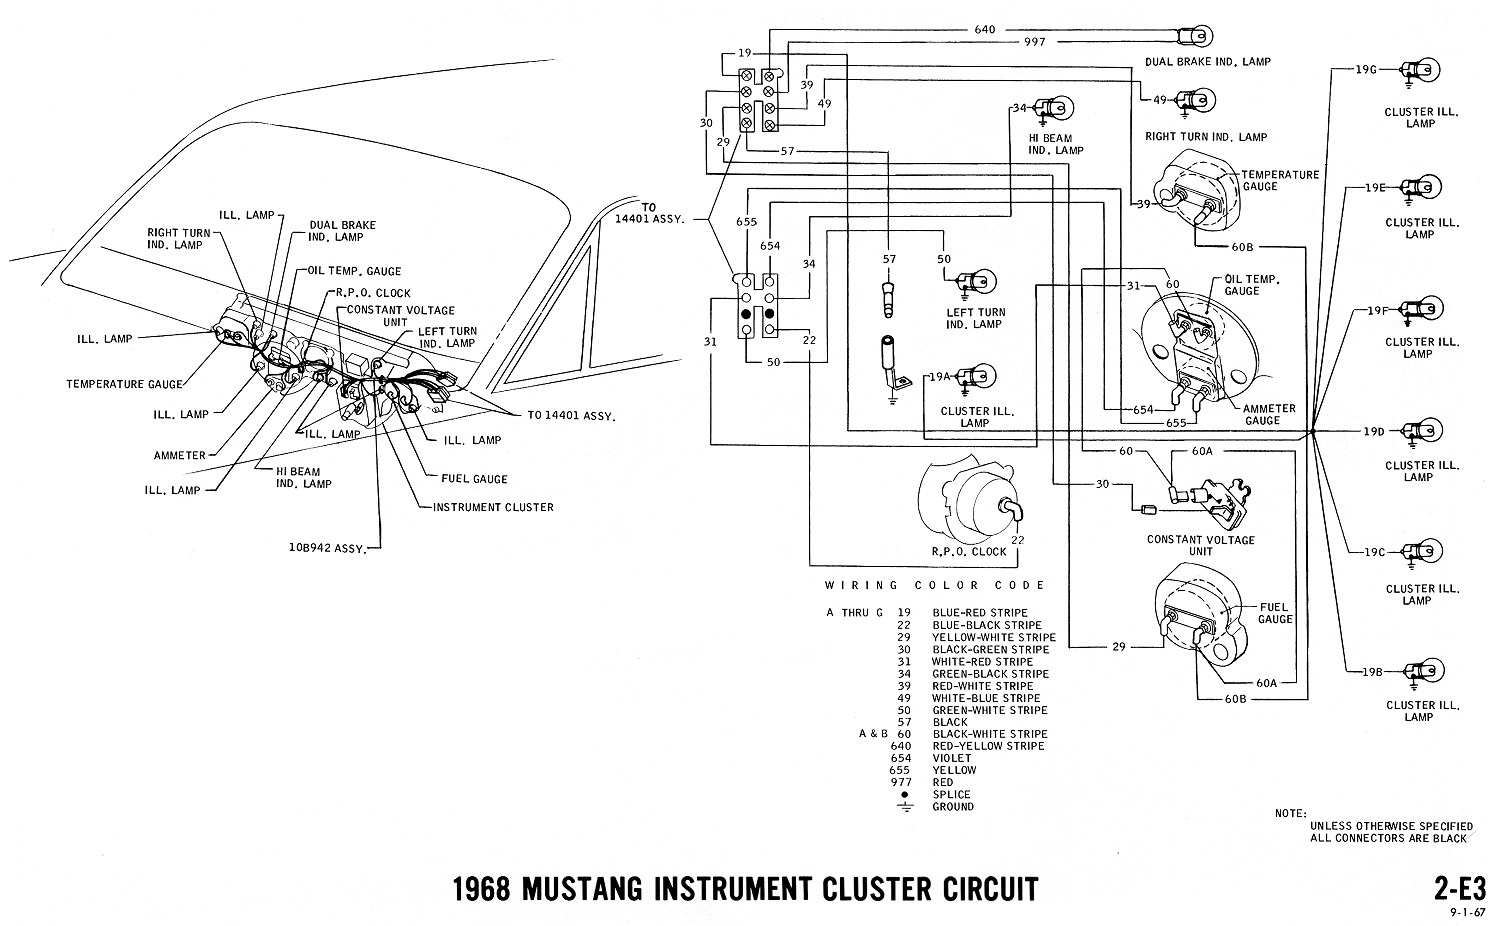 57 Steering Column Rebuild Trifive 1955 Chevy 1956 moreover Mump 0703 Mustang Emergency Brake Repair in addition Thermo King Wiring Diagram besides Horn Push On Wiring Diagram together with 1968 Mustang Wiring Diagram Vacuum Schematics. on 1965 mustang wiring diagrams